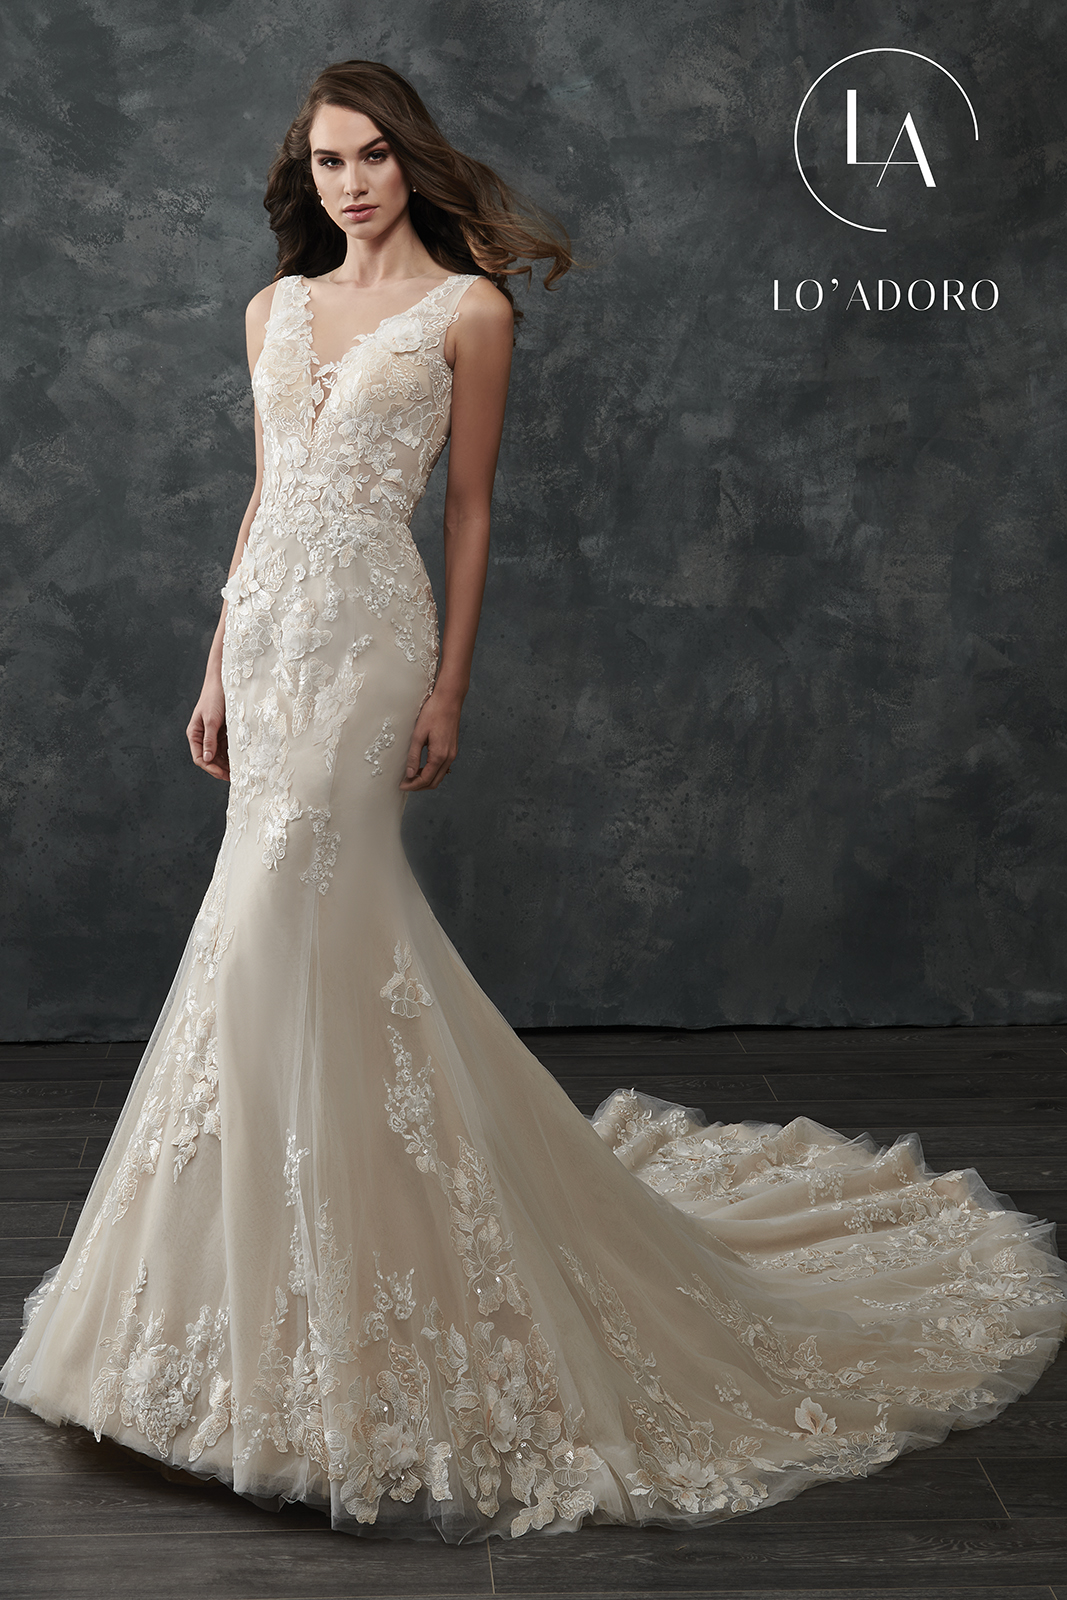 V-Neck Fitted Long Lo' Adoro Bridal in White Color